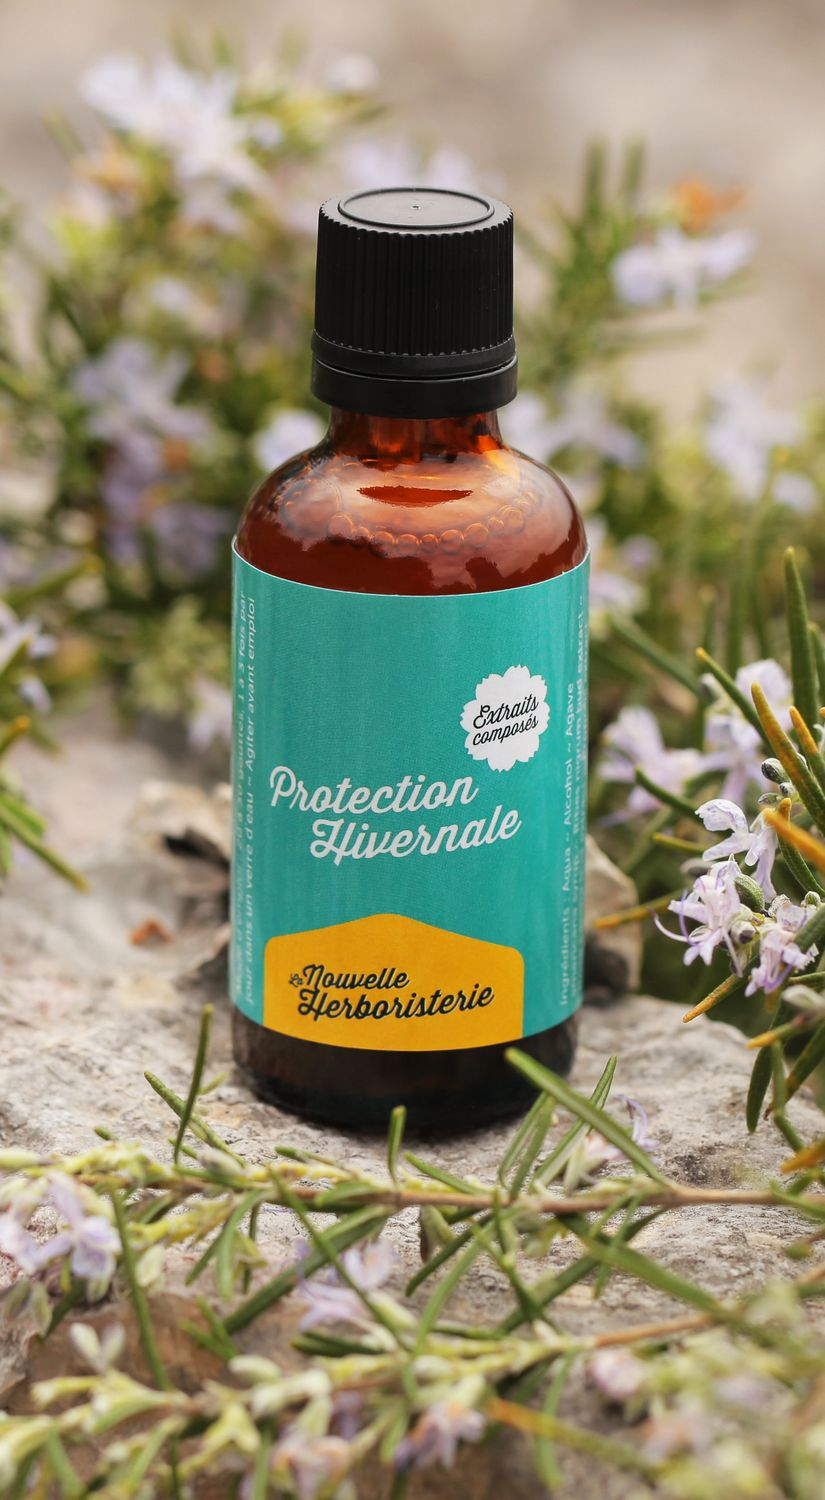 Photo produit - protection hivernale - La Nouvelle Herboristerie